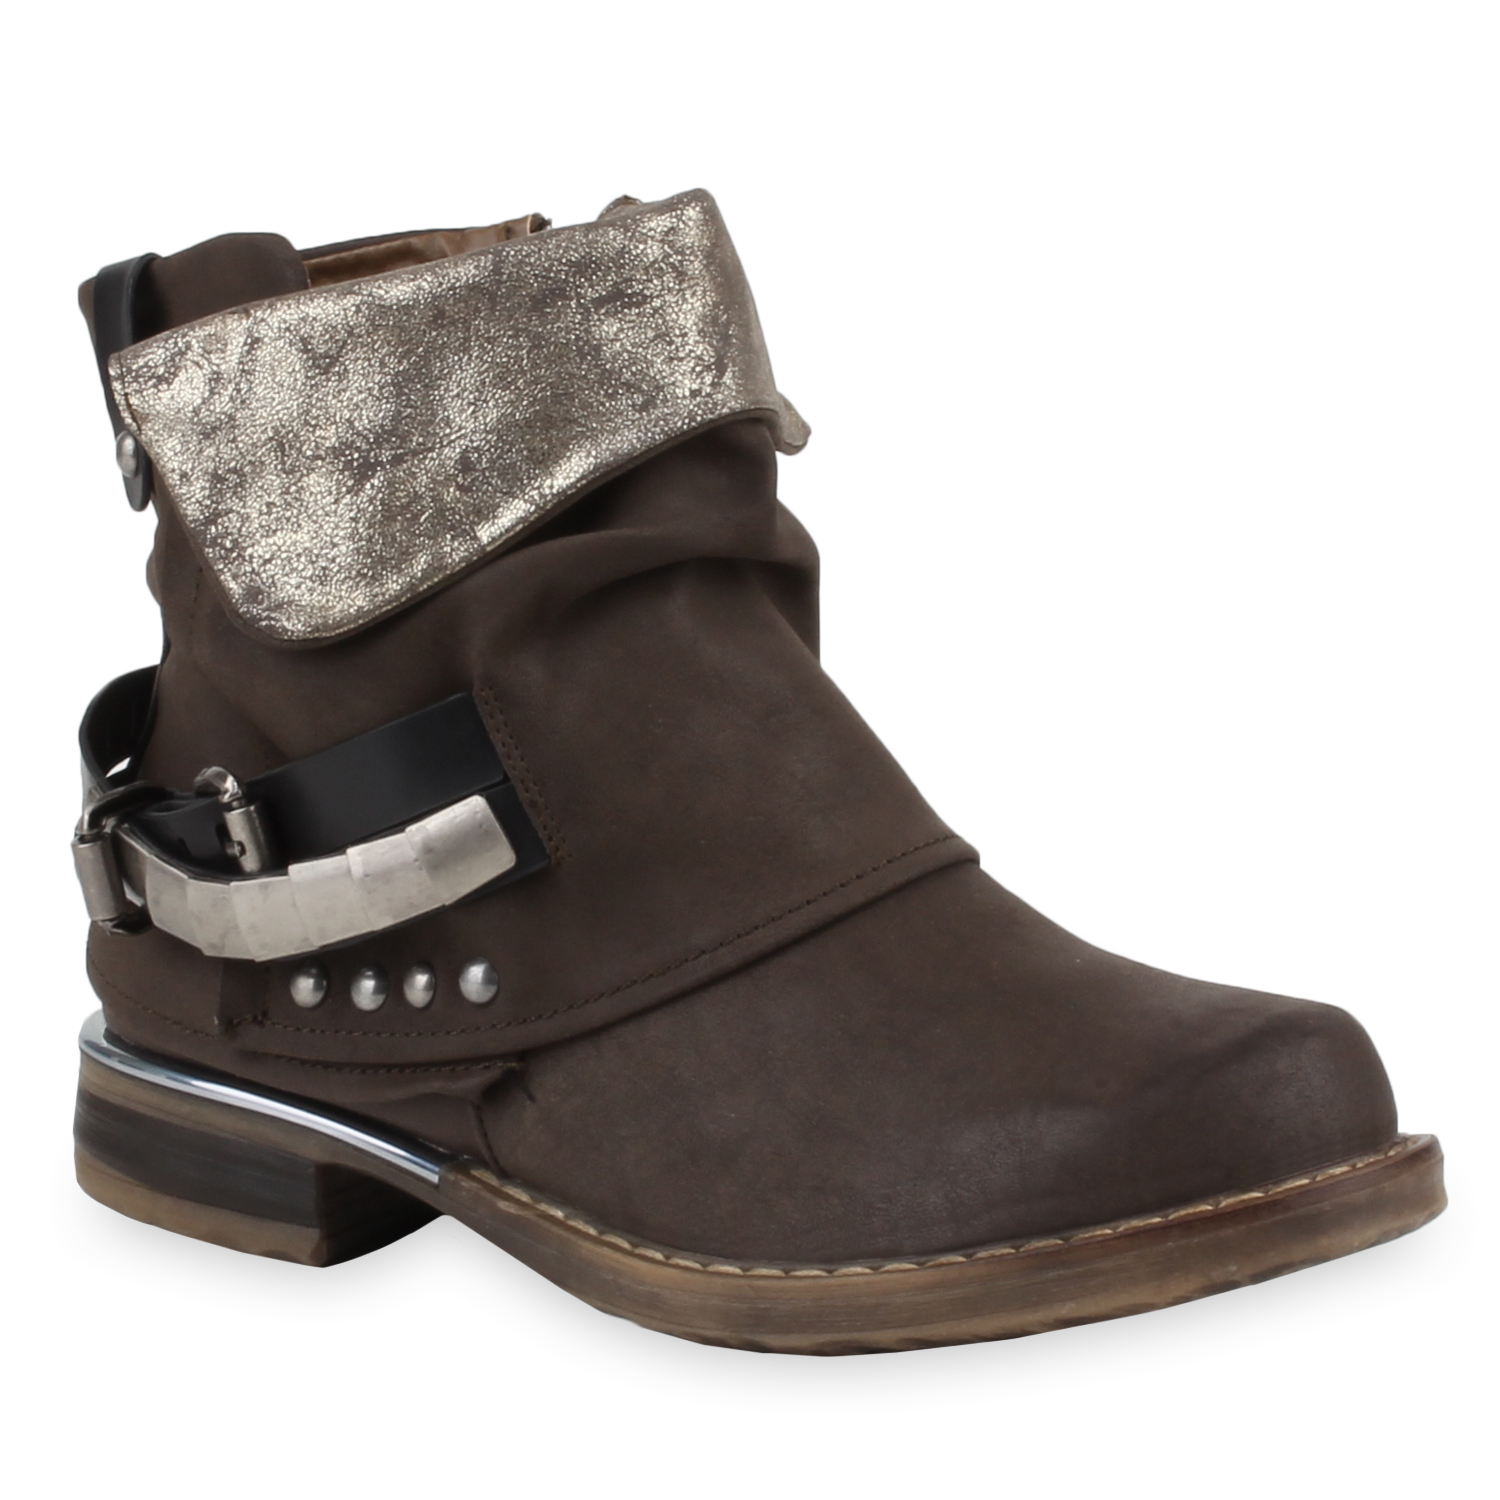 stylische damen stiefeletten stiefel biker boots metallic nieten 77659 new look ebay. Black Bedroom Furniture Sets. Home Design Ideas